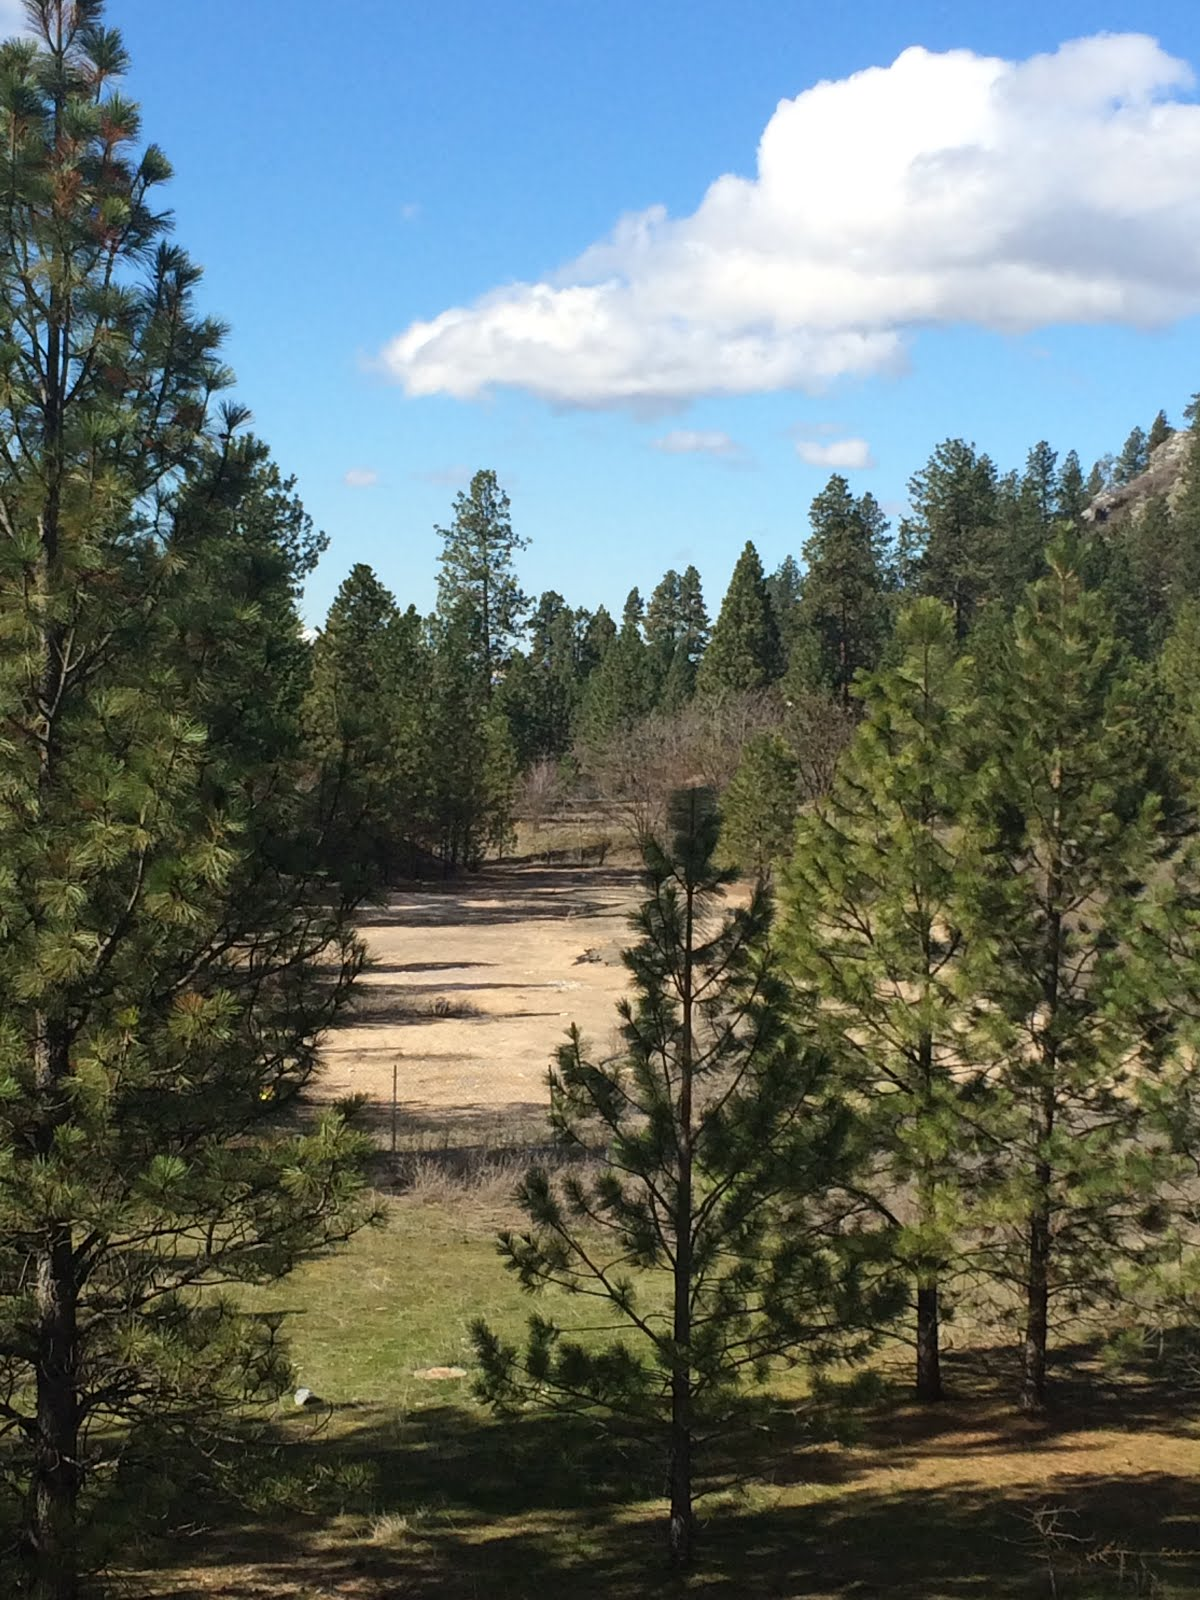 A bare patch of ground between Ponderosa pines.